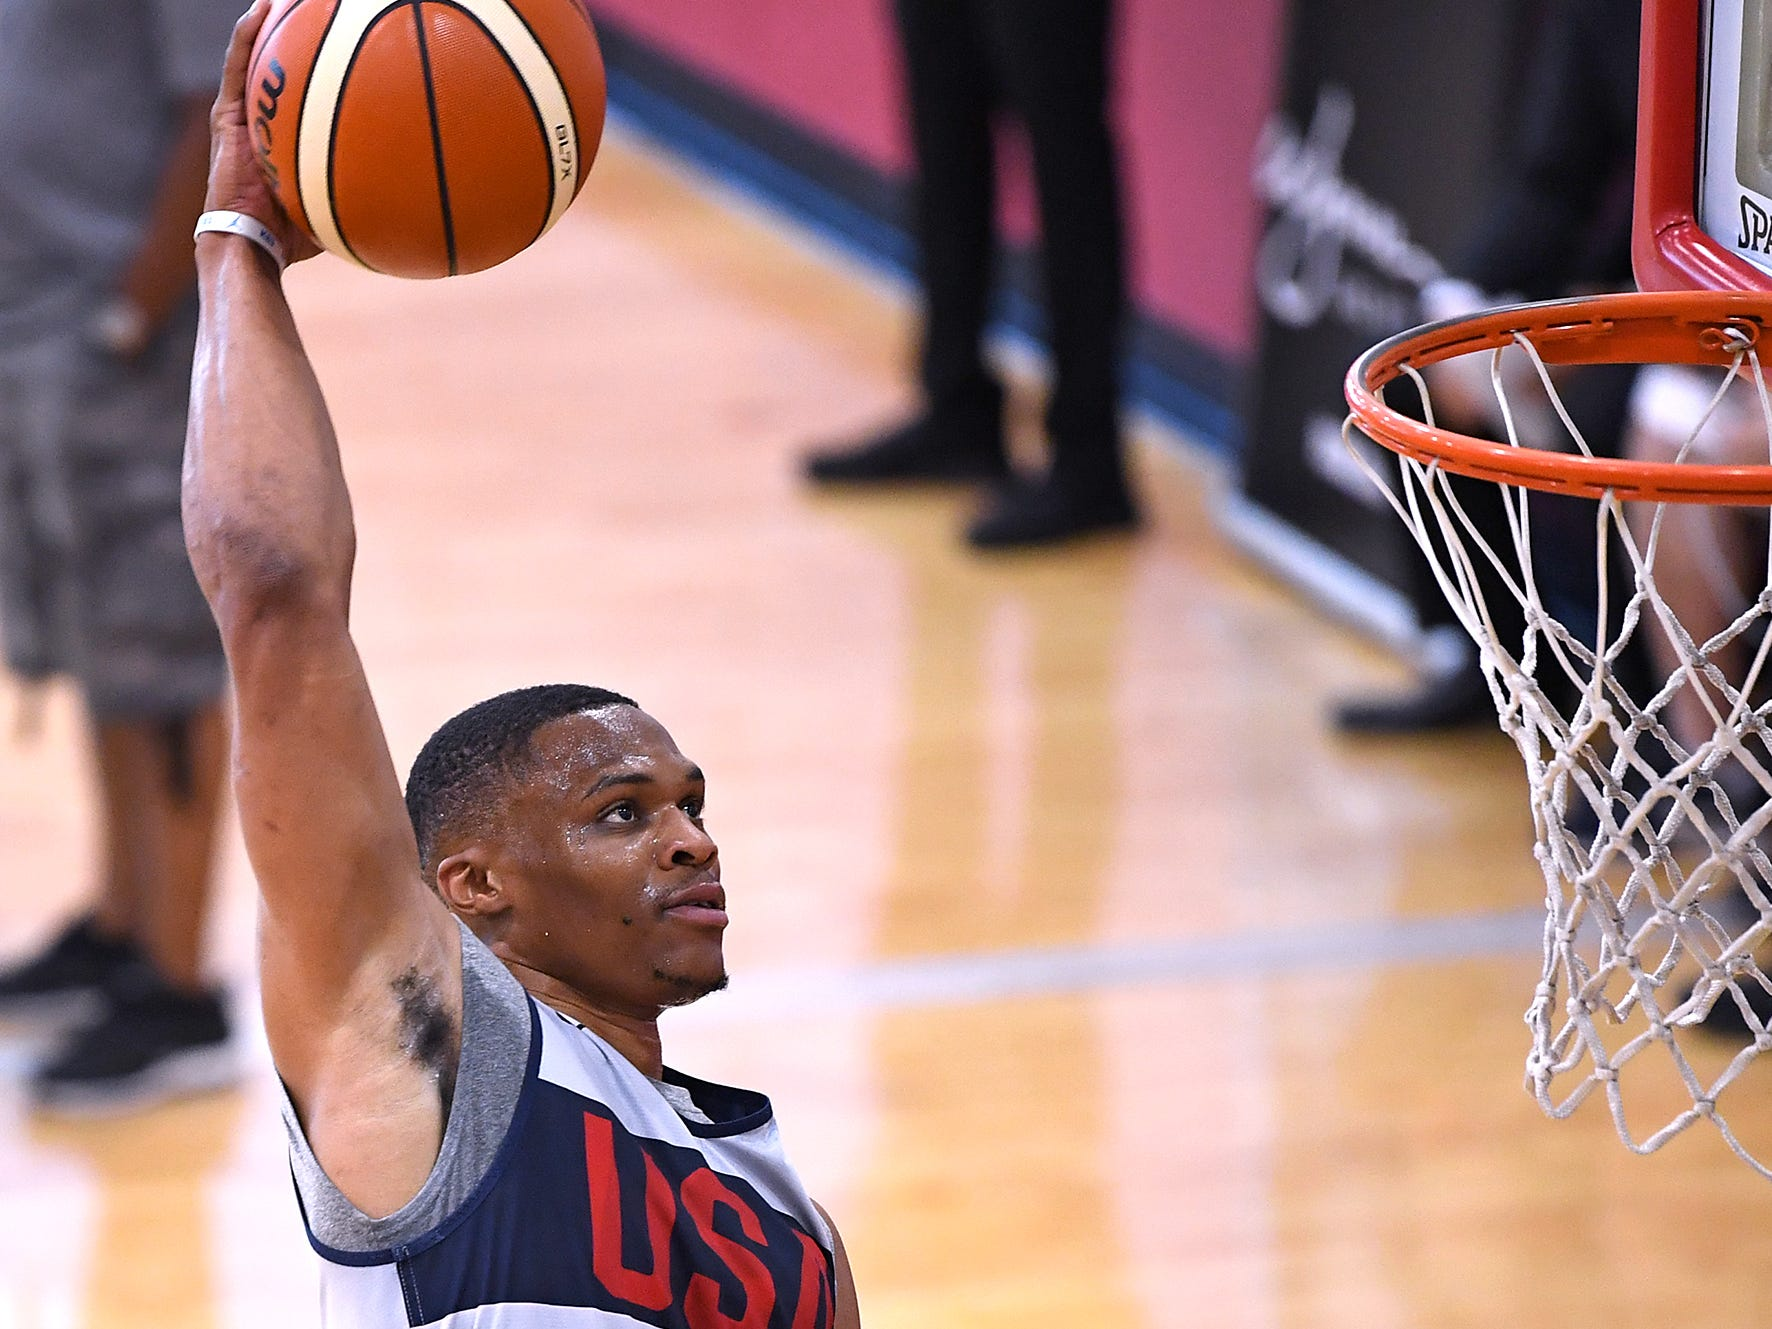 Russell Westbrook dunks during the 2018 USA Basketball National Team Minicamp.